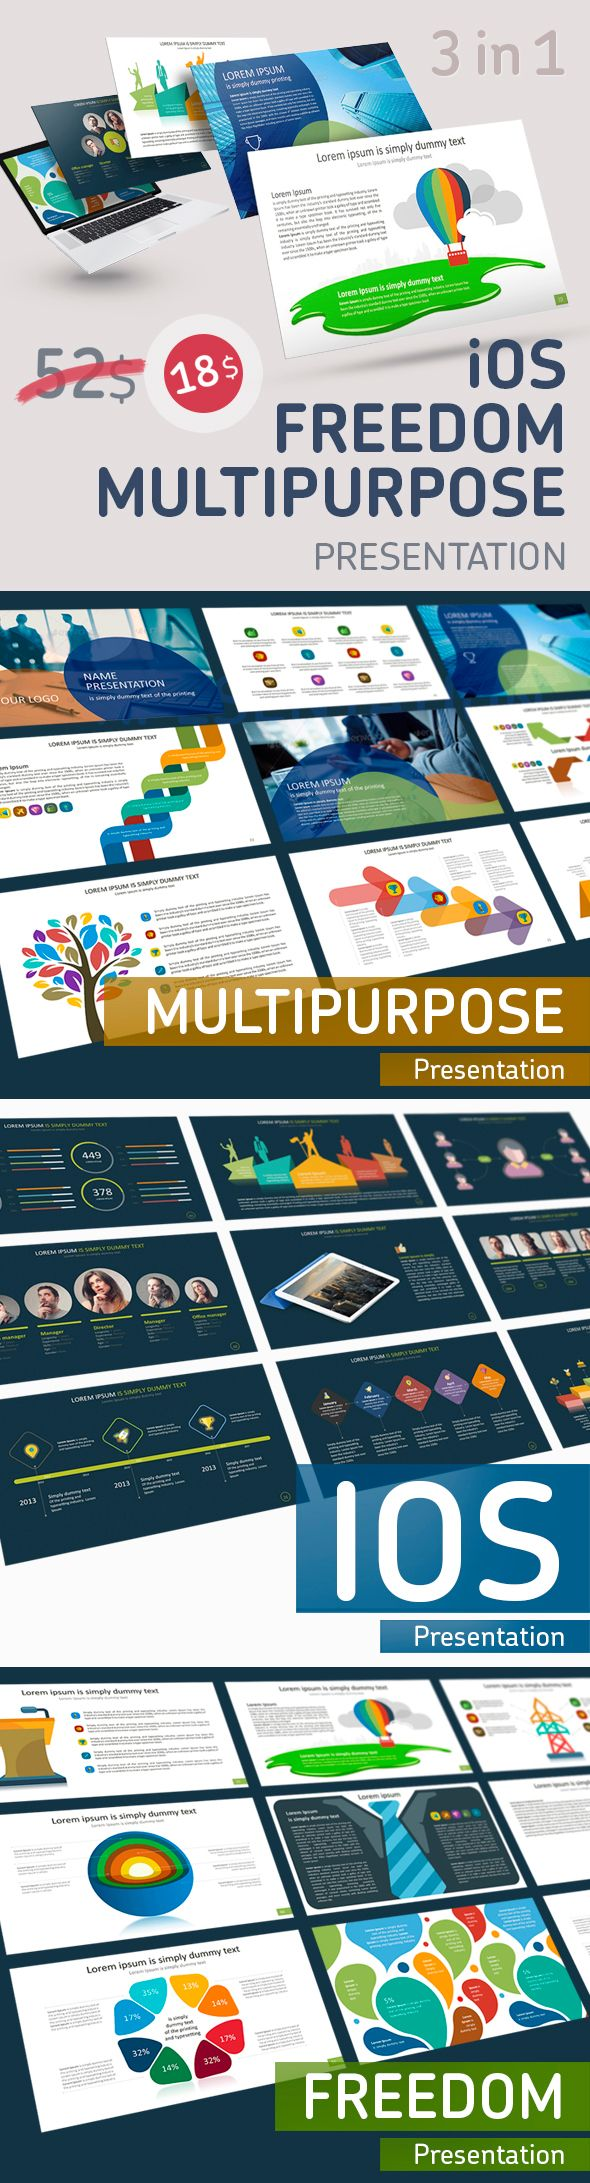 3 in 1 Pack Presentation PowerPoint Templates #design #slides Download: http://graphicriver.net/item/3-in-1-pack-presentation-powerpoint/13382457?ref=ksioks